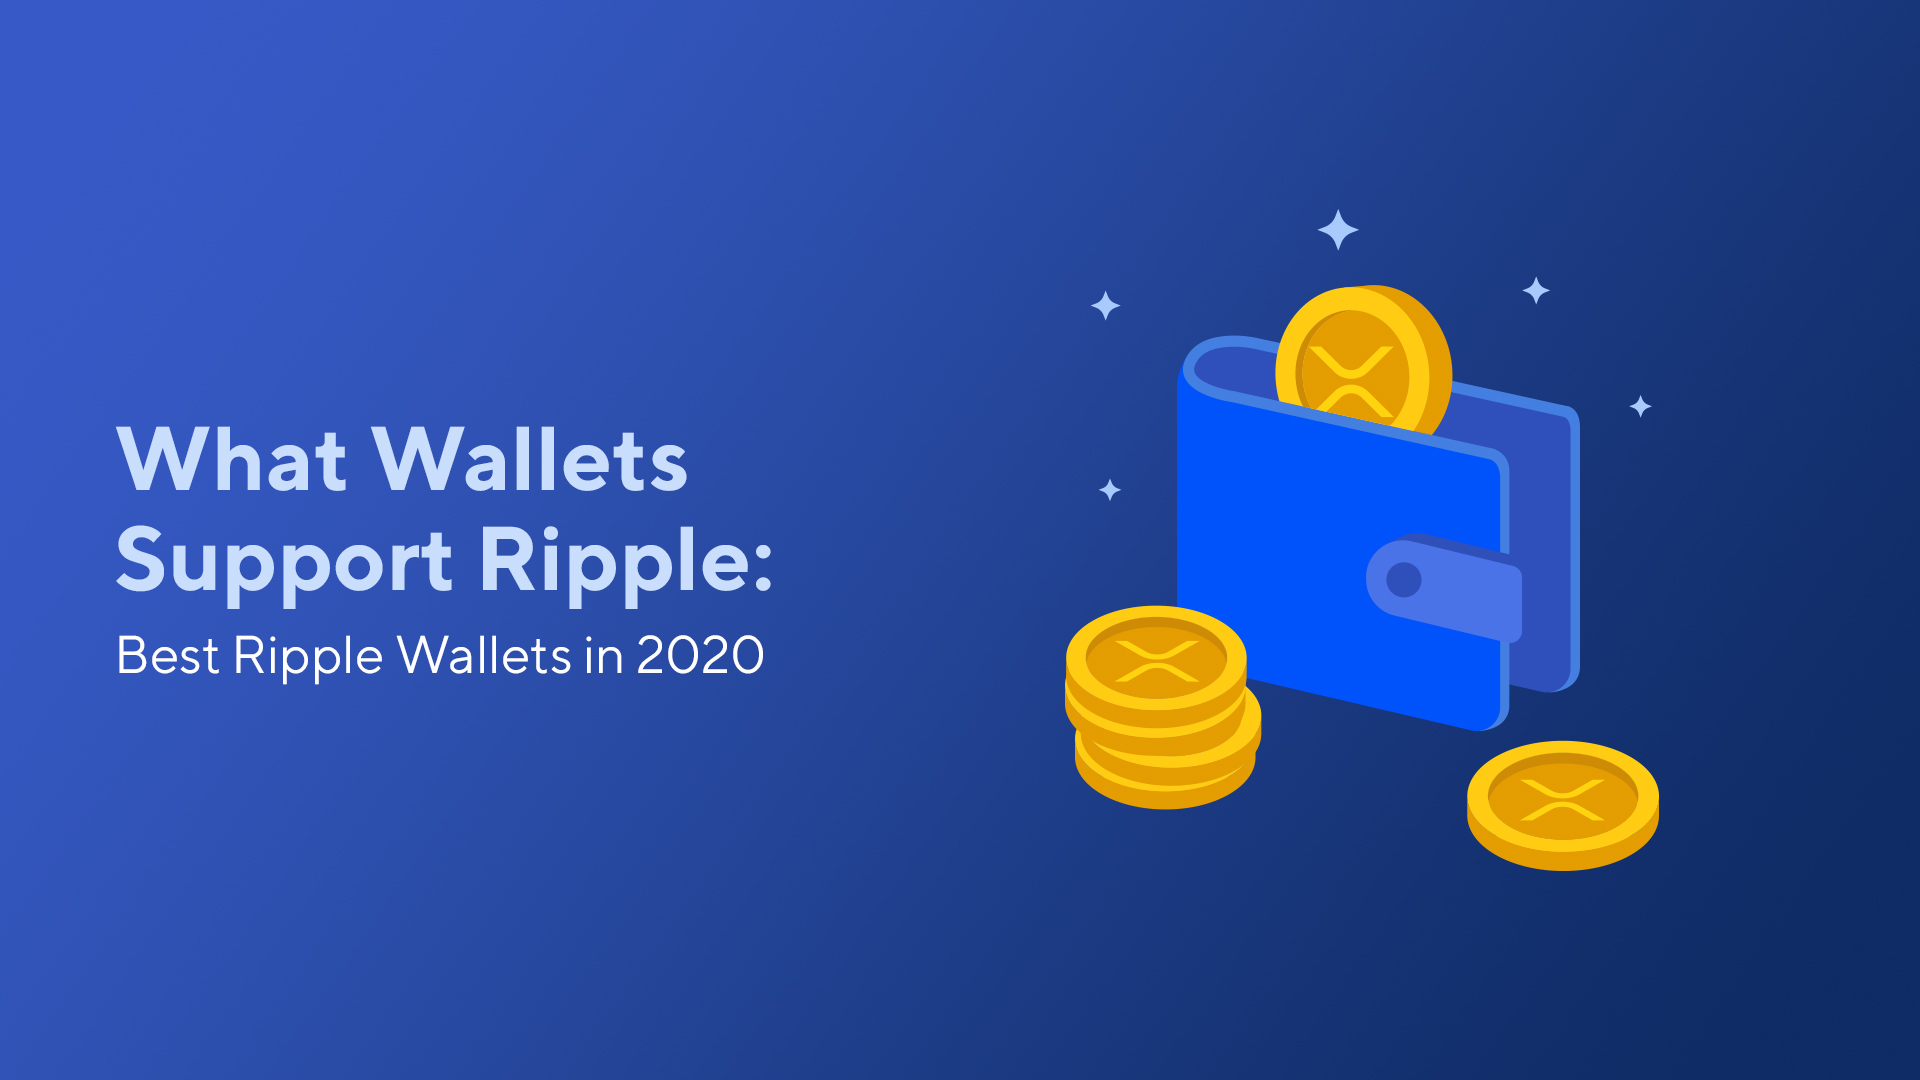 What Wallets Support Ripple: Best Ripple Wallets in 2020